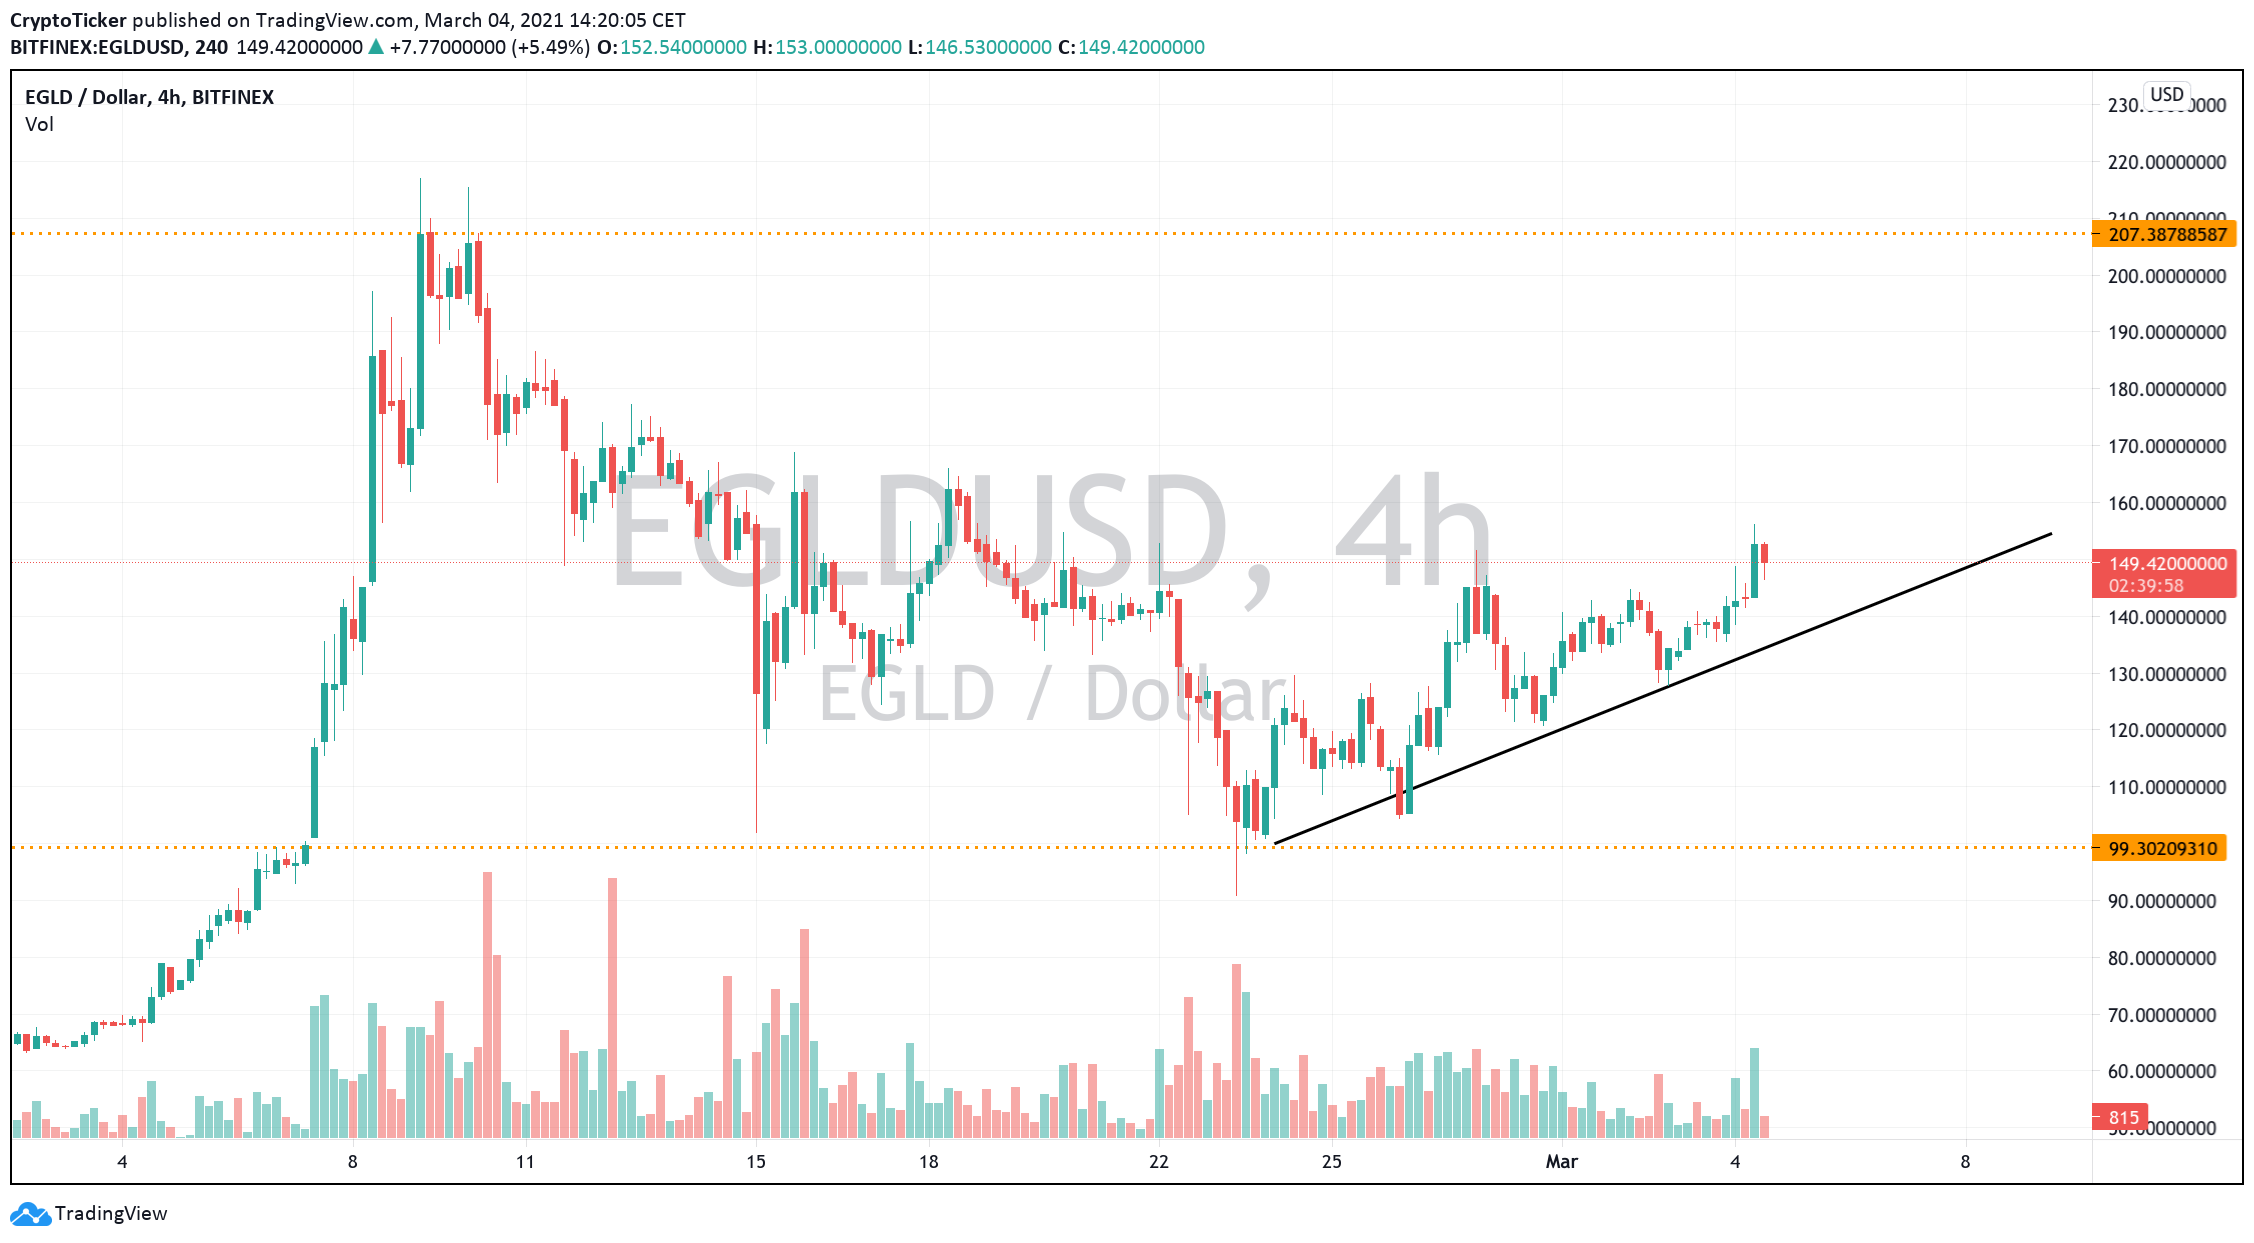 EGLD/USD 4-Hours chart showing EGLD's break of its previous downtrend